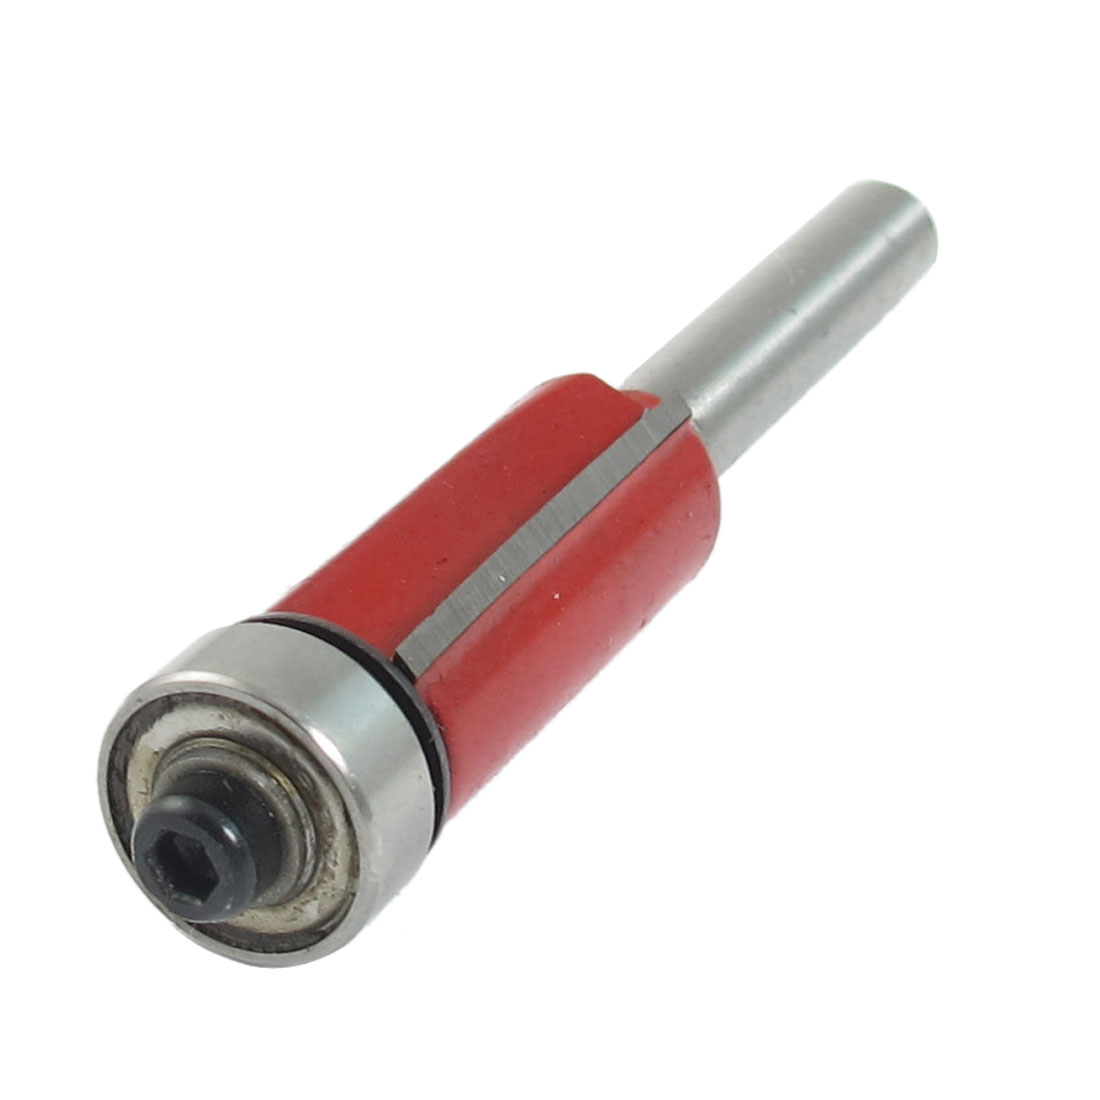 "Silver Tone Red Dual Flutes Cutting Straight Router Bit 1/4"" x 1/2"""